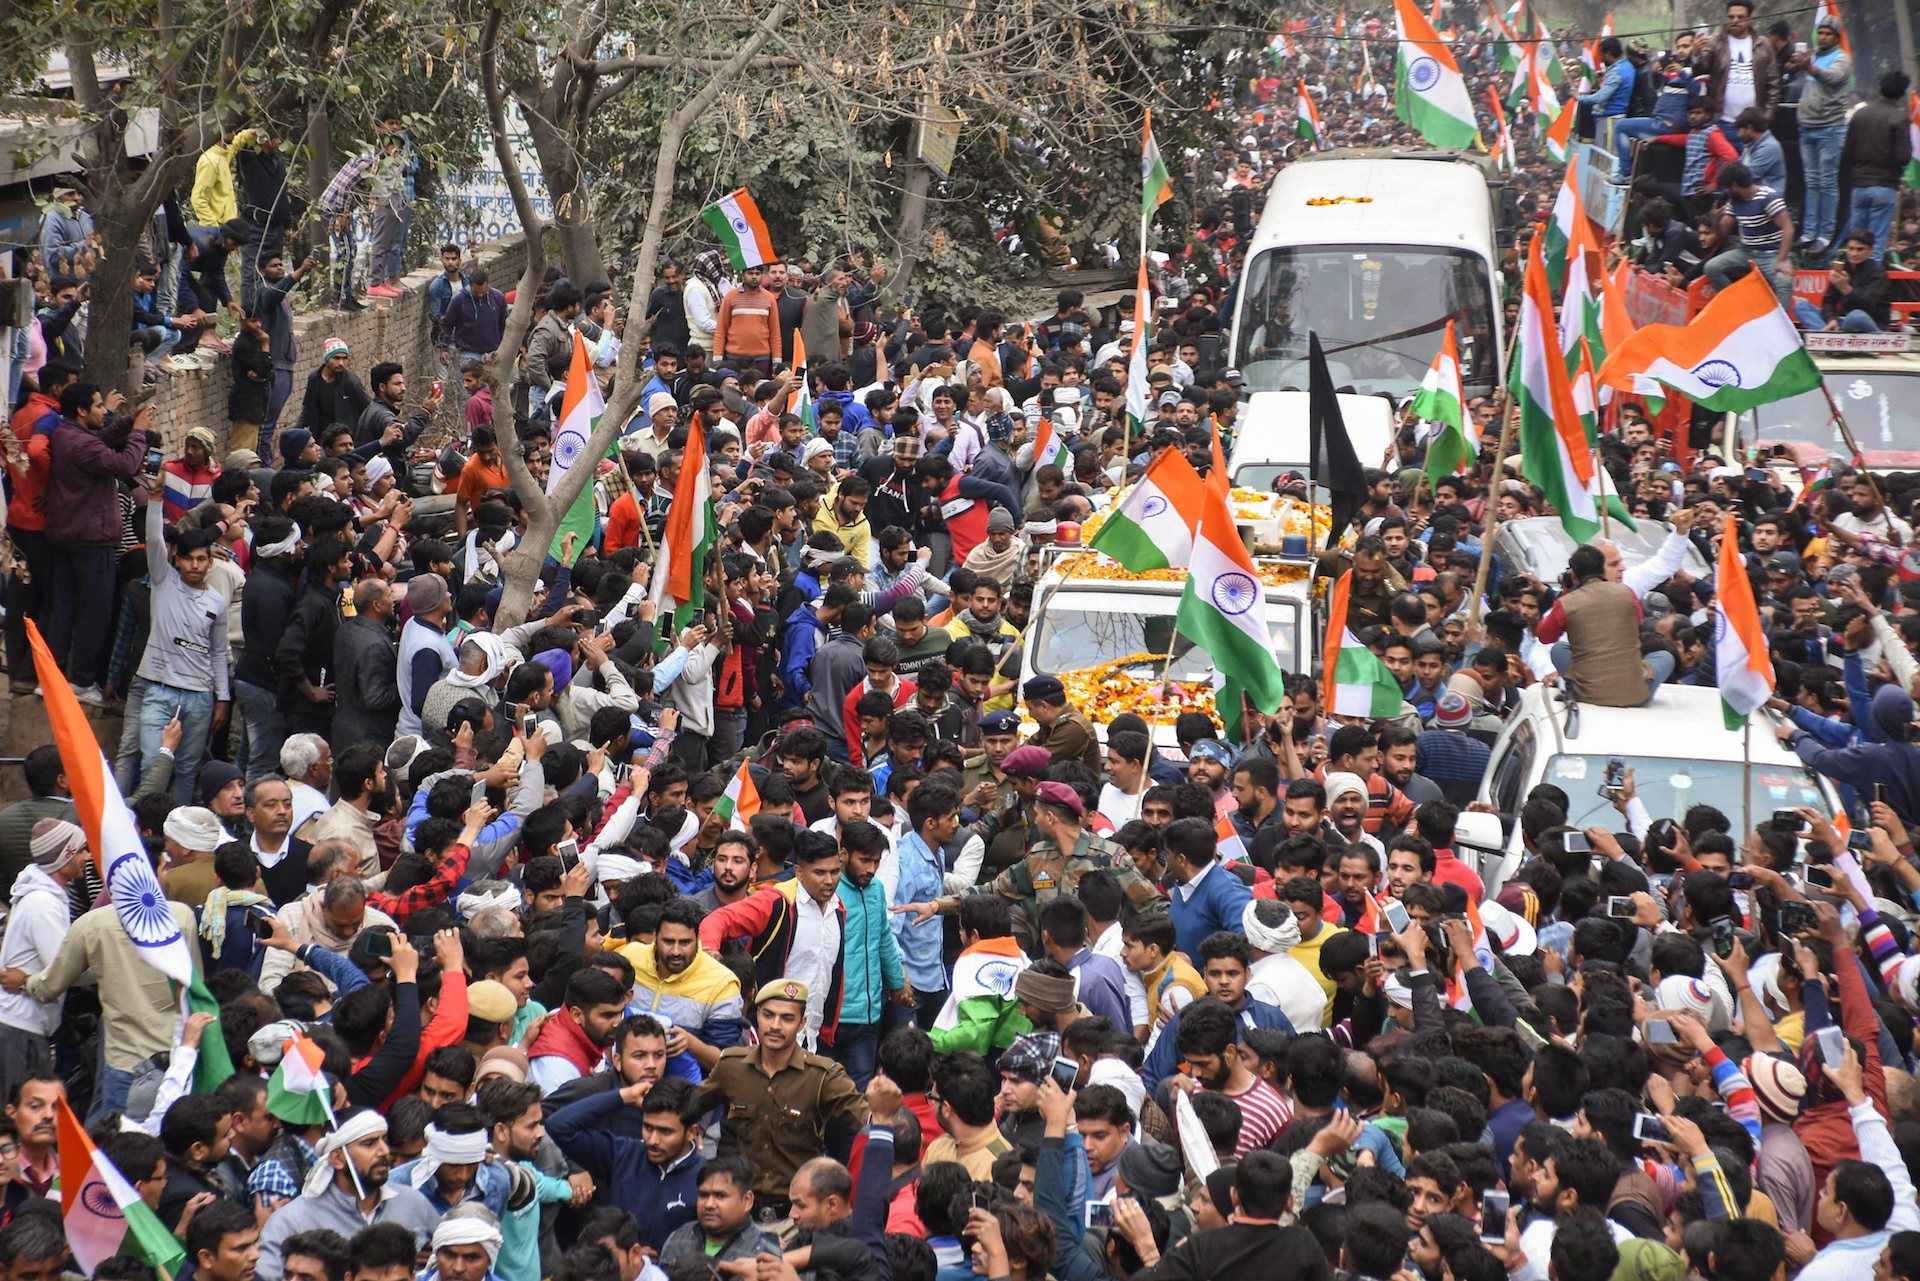 Intense public pressure on Narendra Modi to live up to his 'surgical strike' reputation